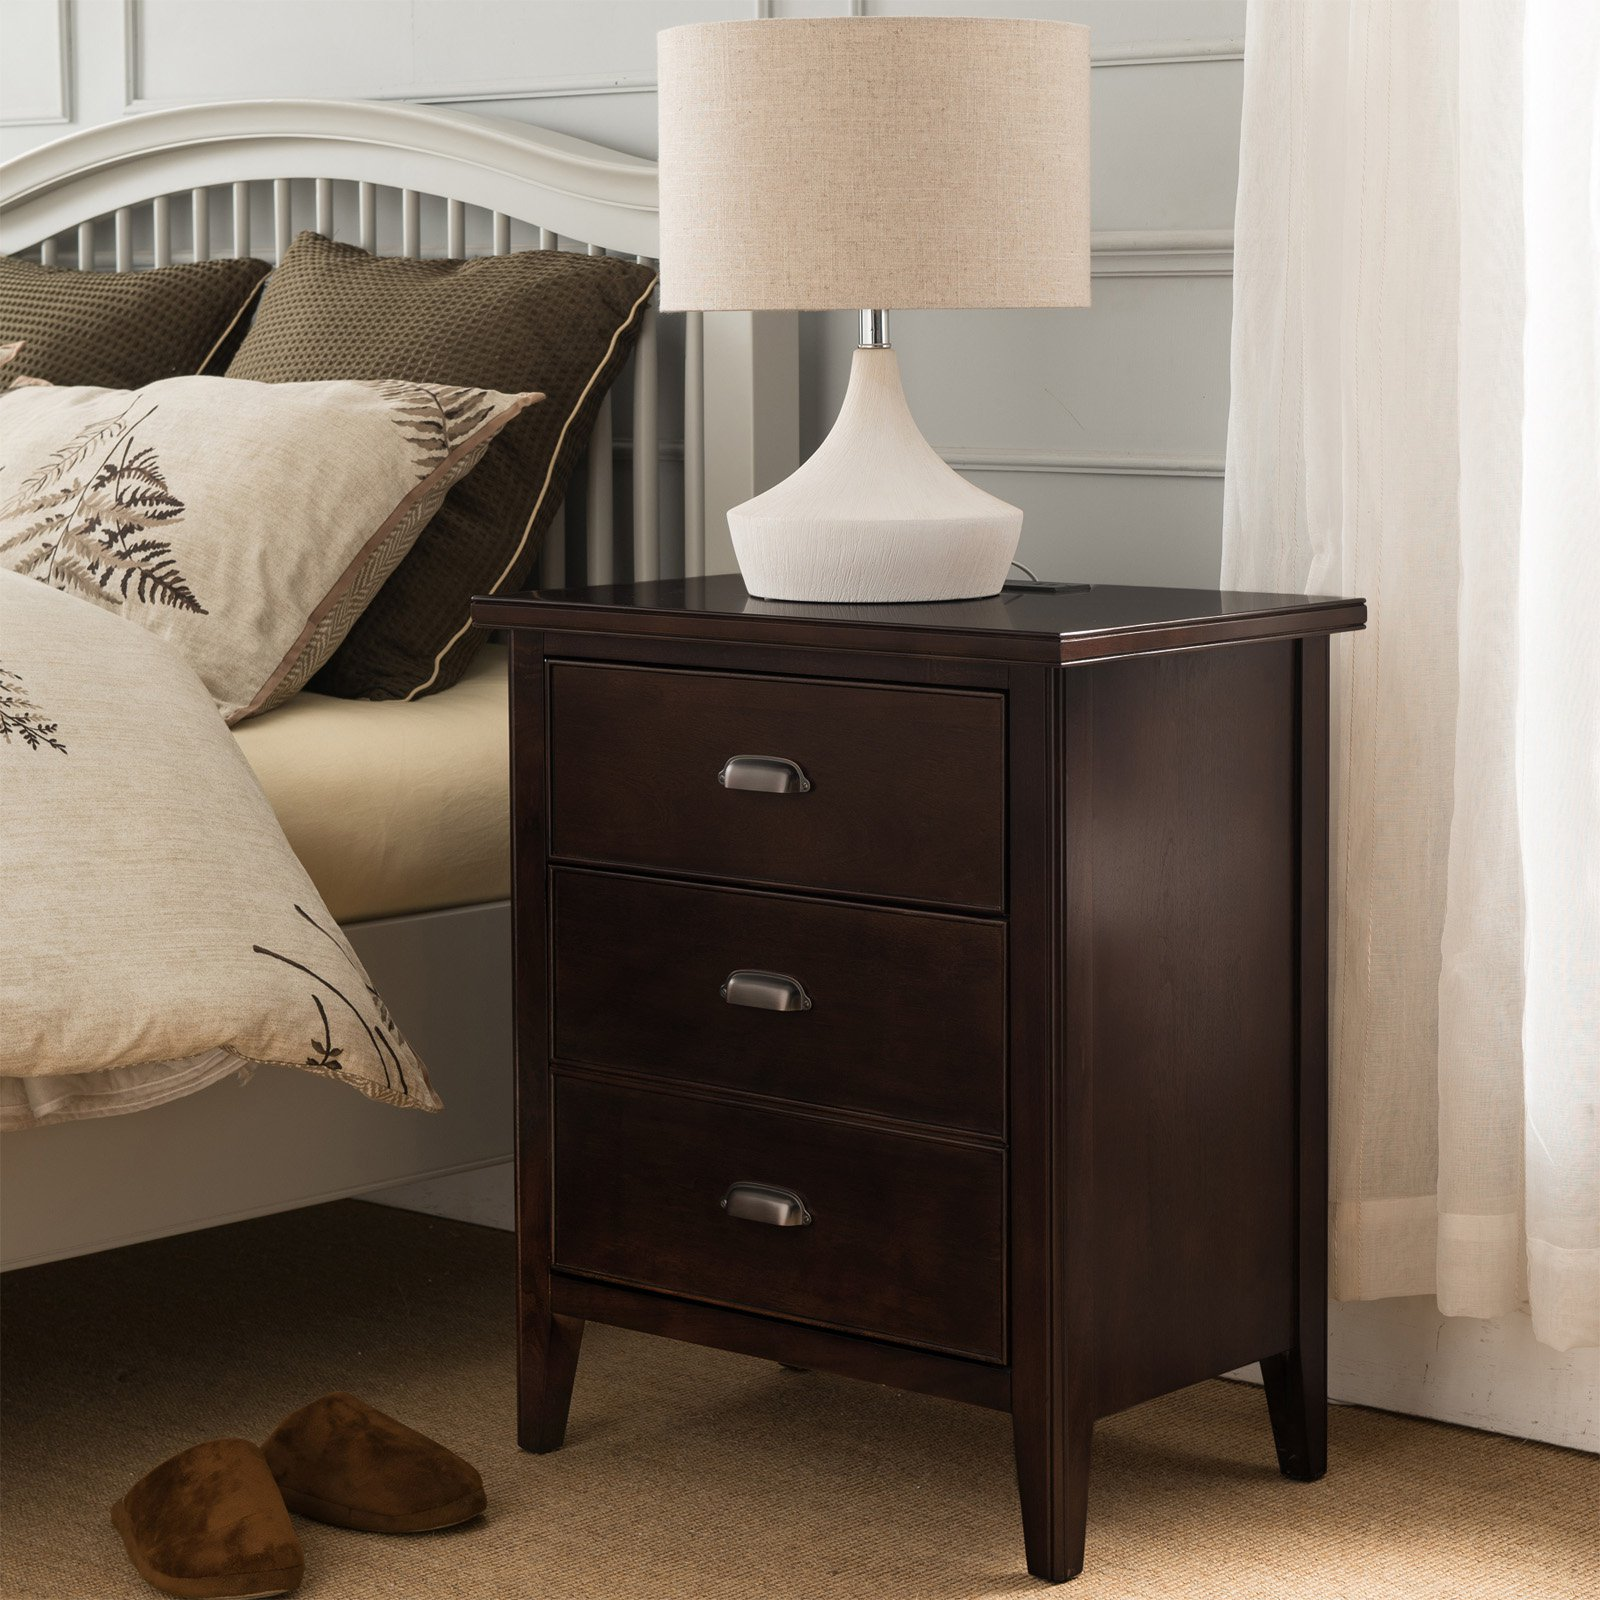 Leick Furniture 3 Drawer Night Stand by Leick Furniture